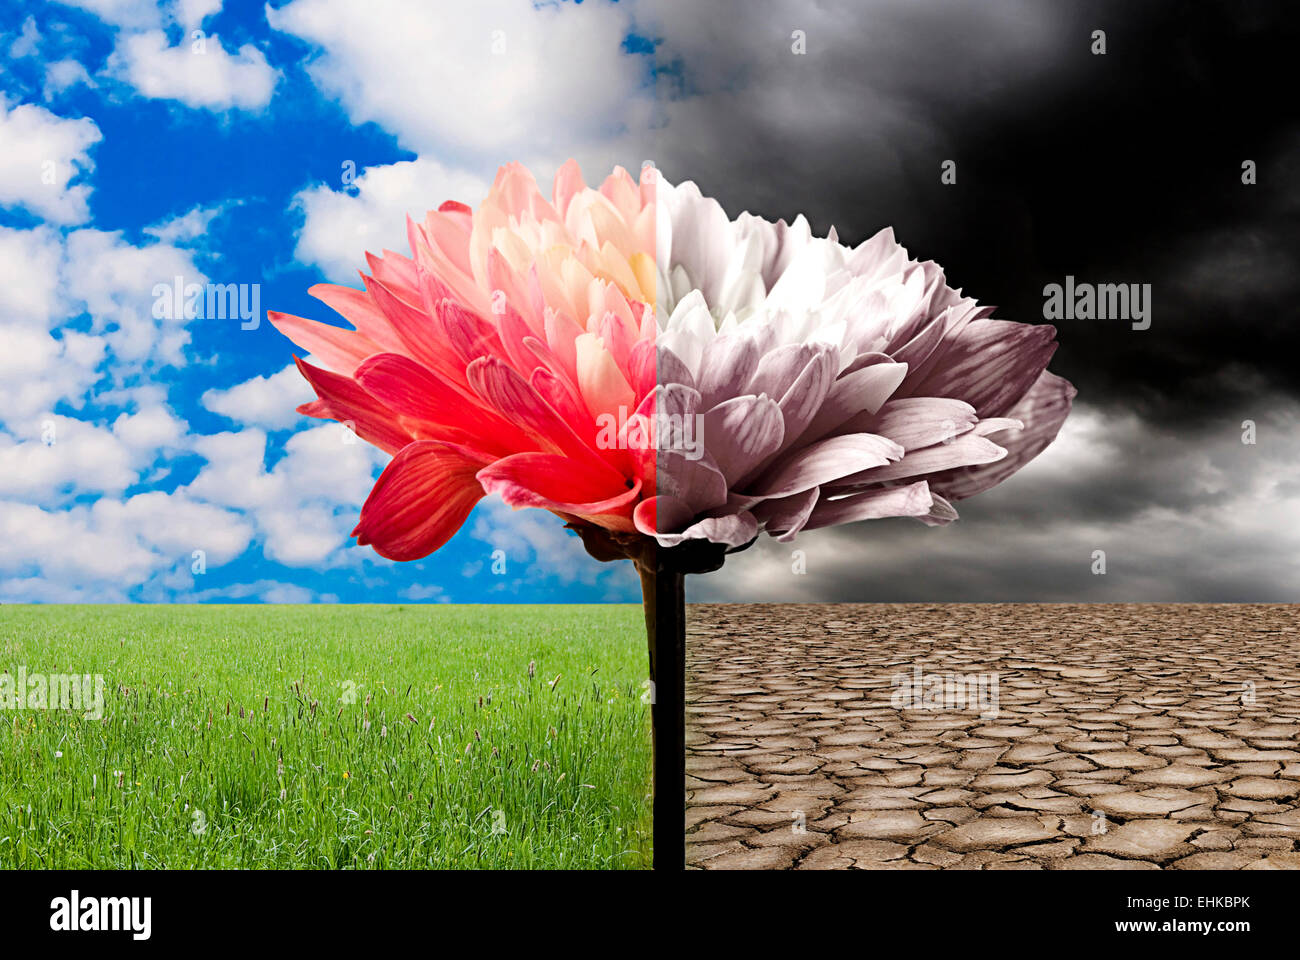 conceptual image for global warming danger and ecology and environment awareness - Stock Image